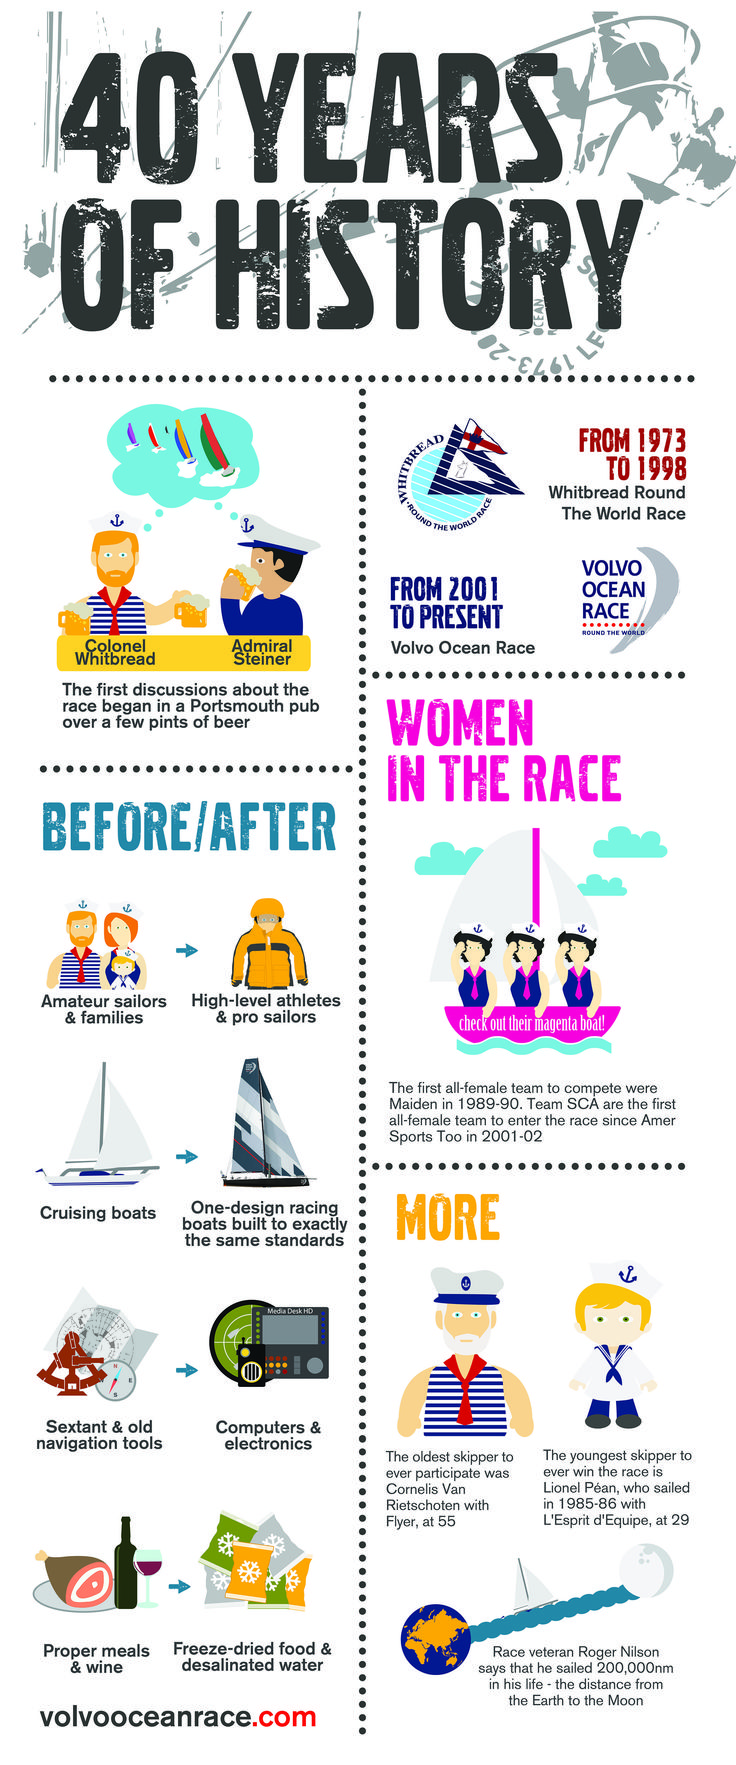 From sextants to on-board computers, from meat & wine to freeze dried food, quick & interesting facts about how the race has evolved over the past 40 years!